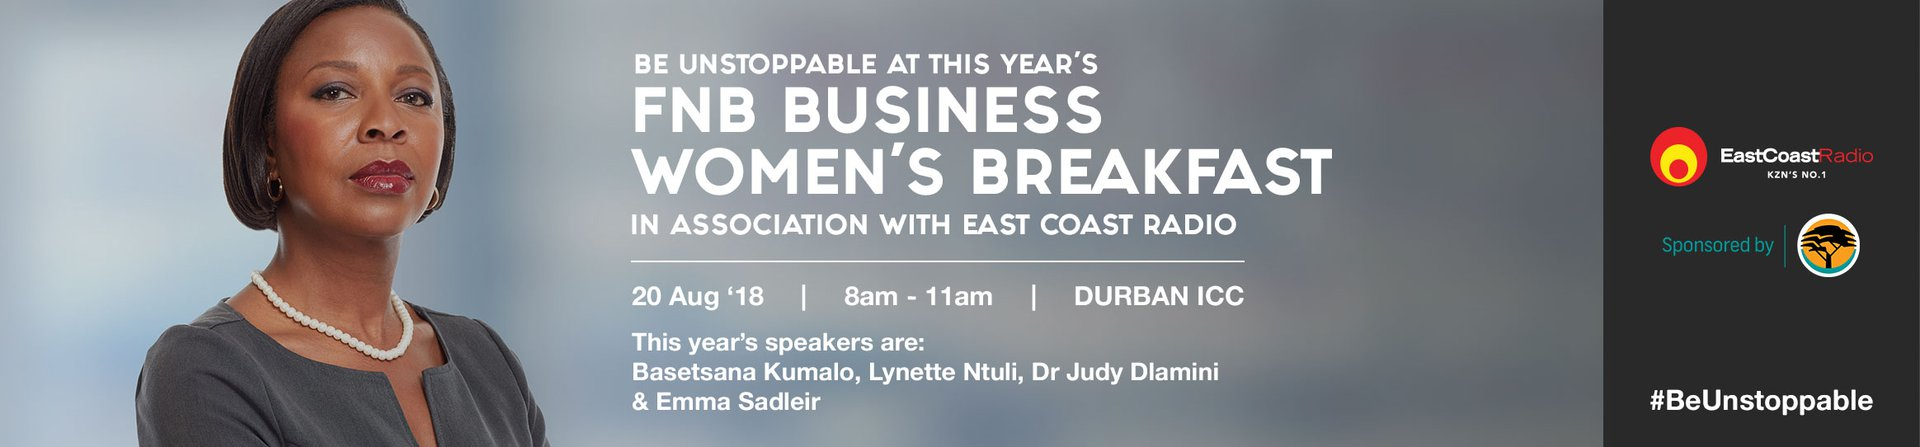 FNB Business Breakfast 2018_Cover Image for Web